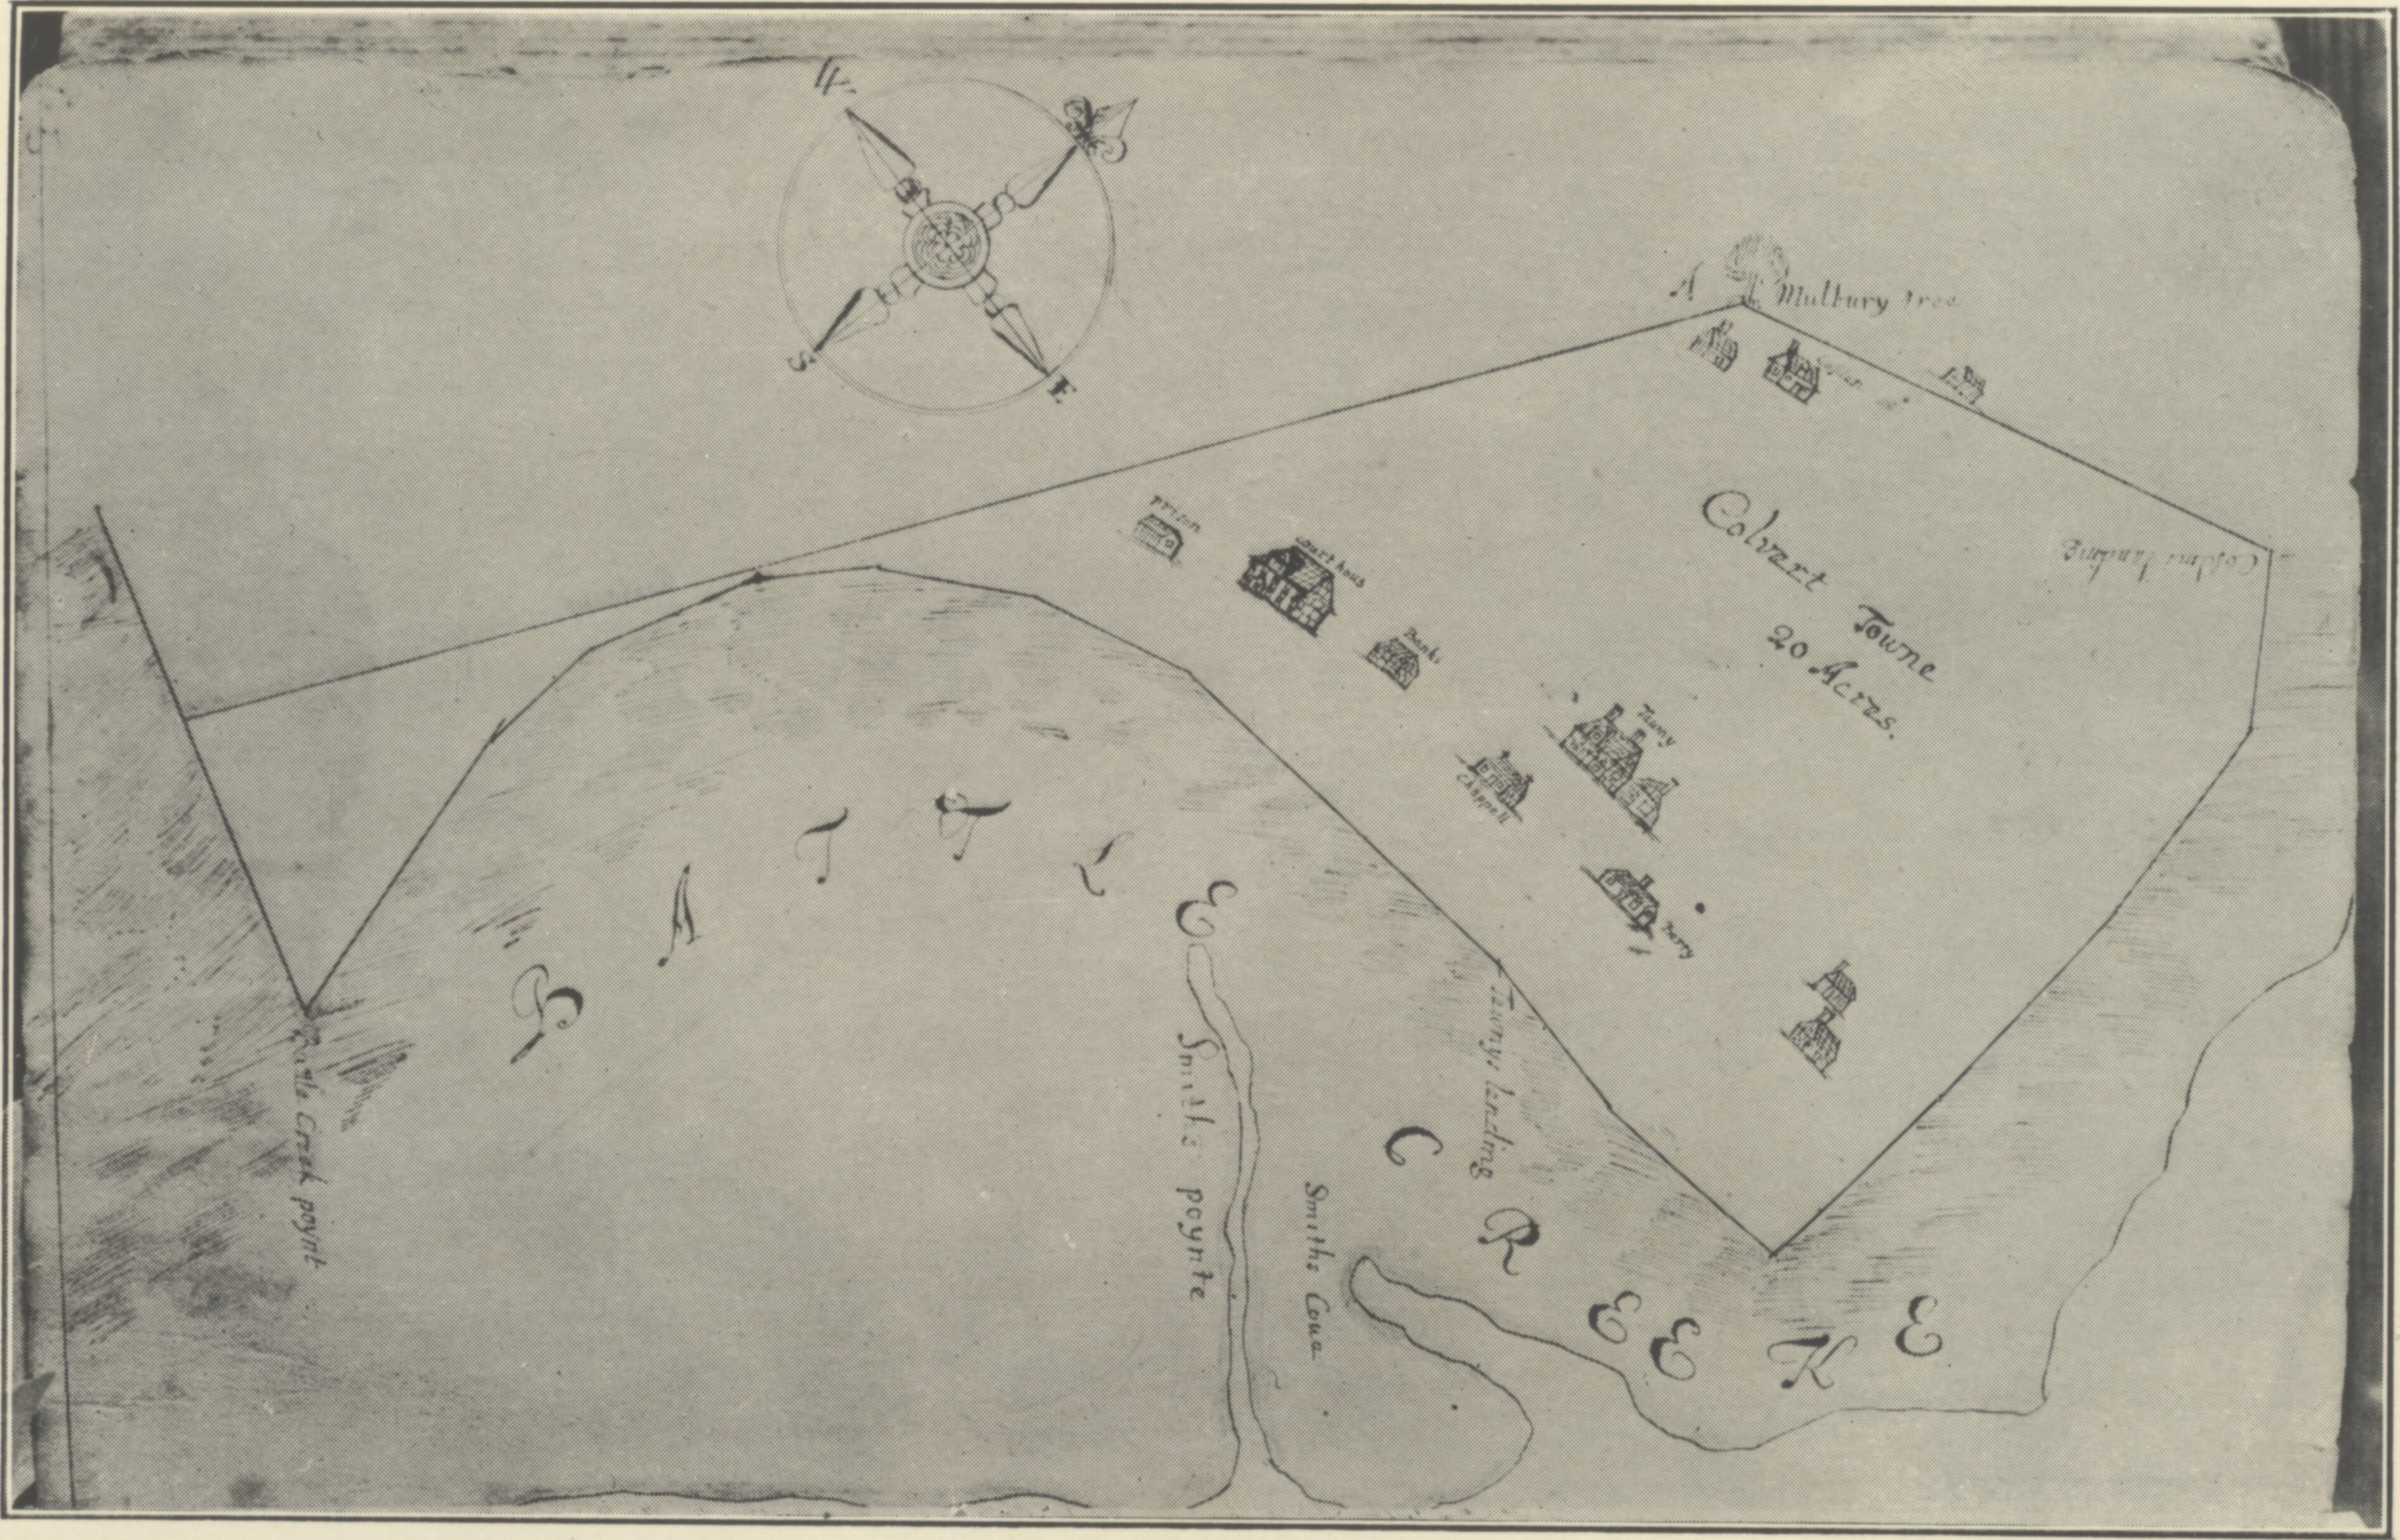 1682 plat of Calverton by Robert Jones